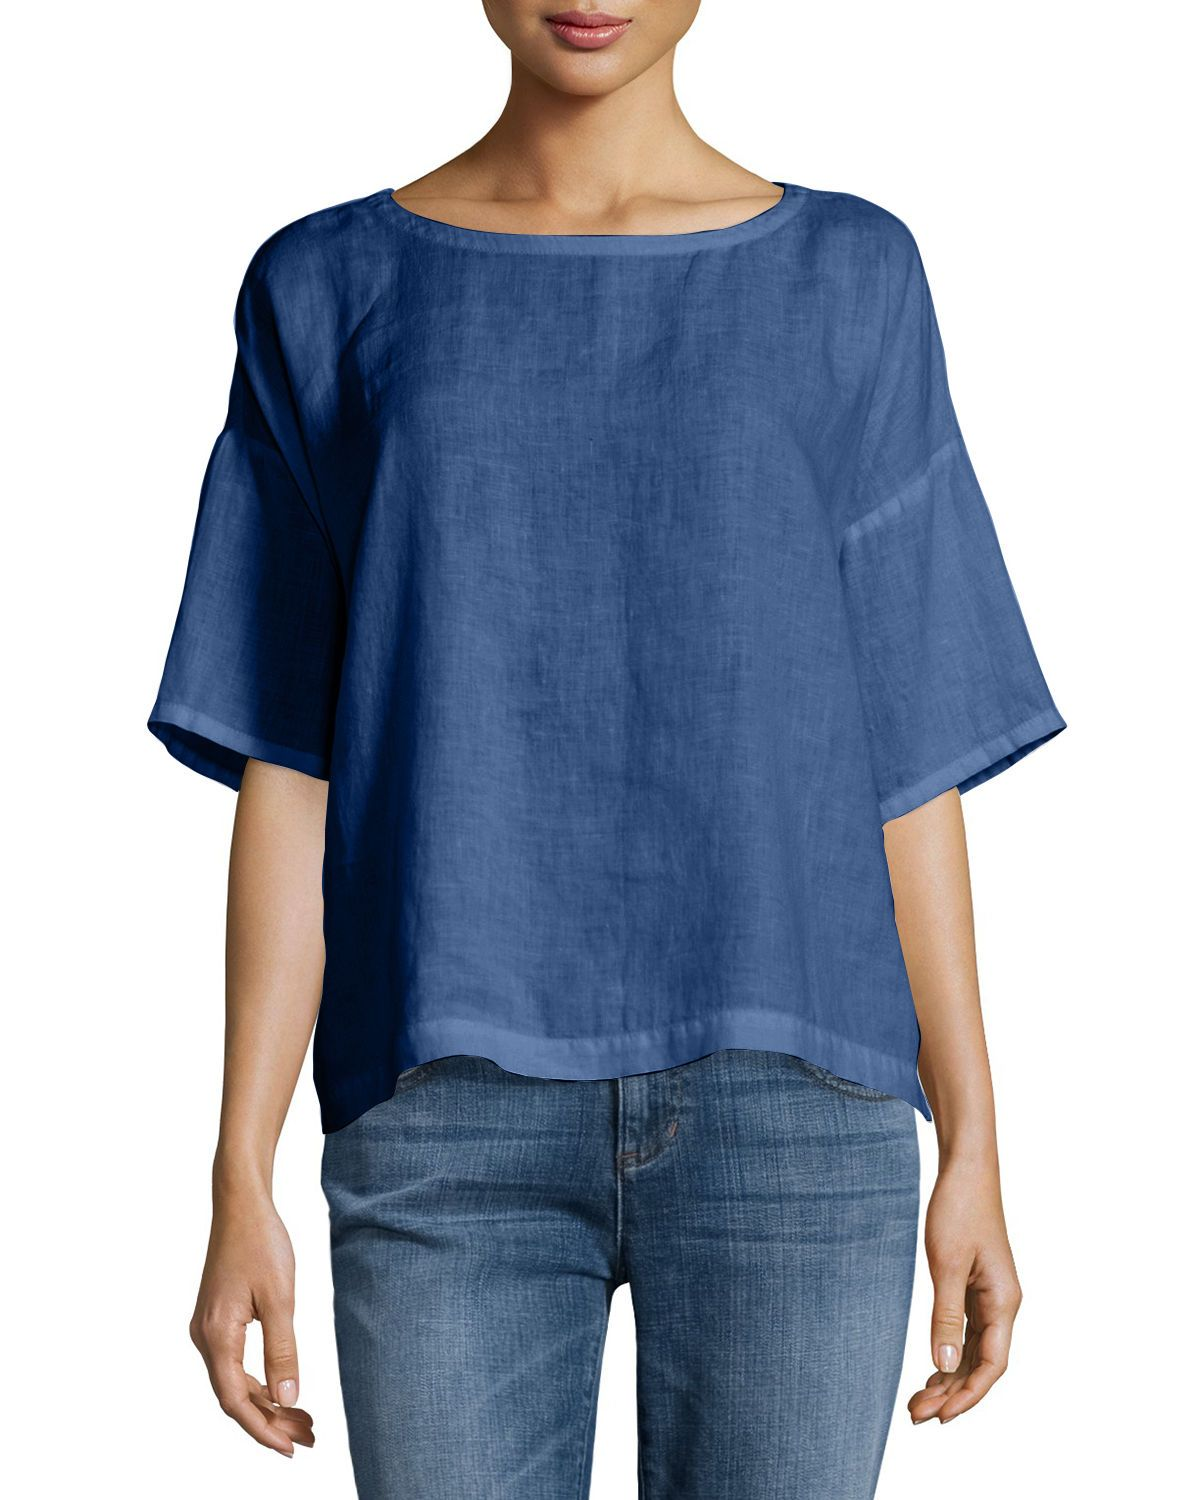 2bc7e7bd9cb Short drop-shoulder sleeves. Boxy silhouette. Pull-on style. Organic linen   machine wash. Imported.